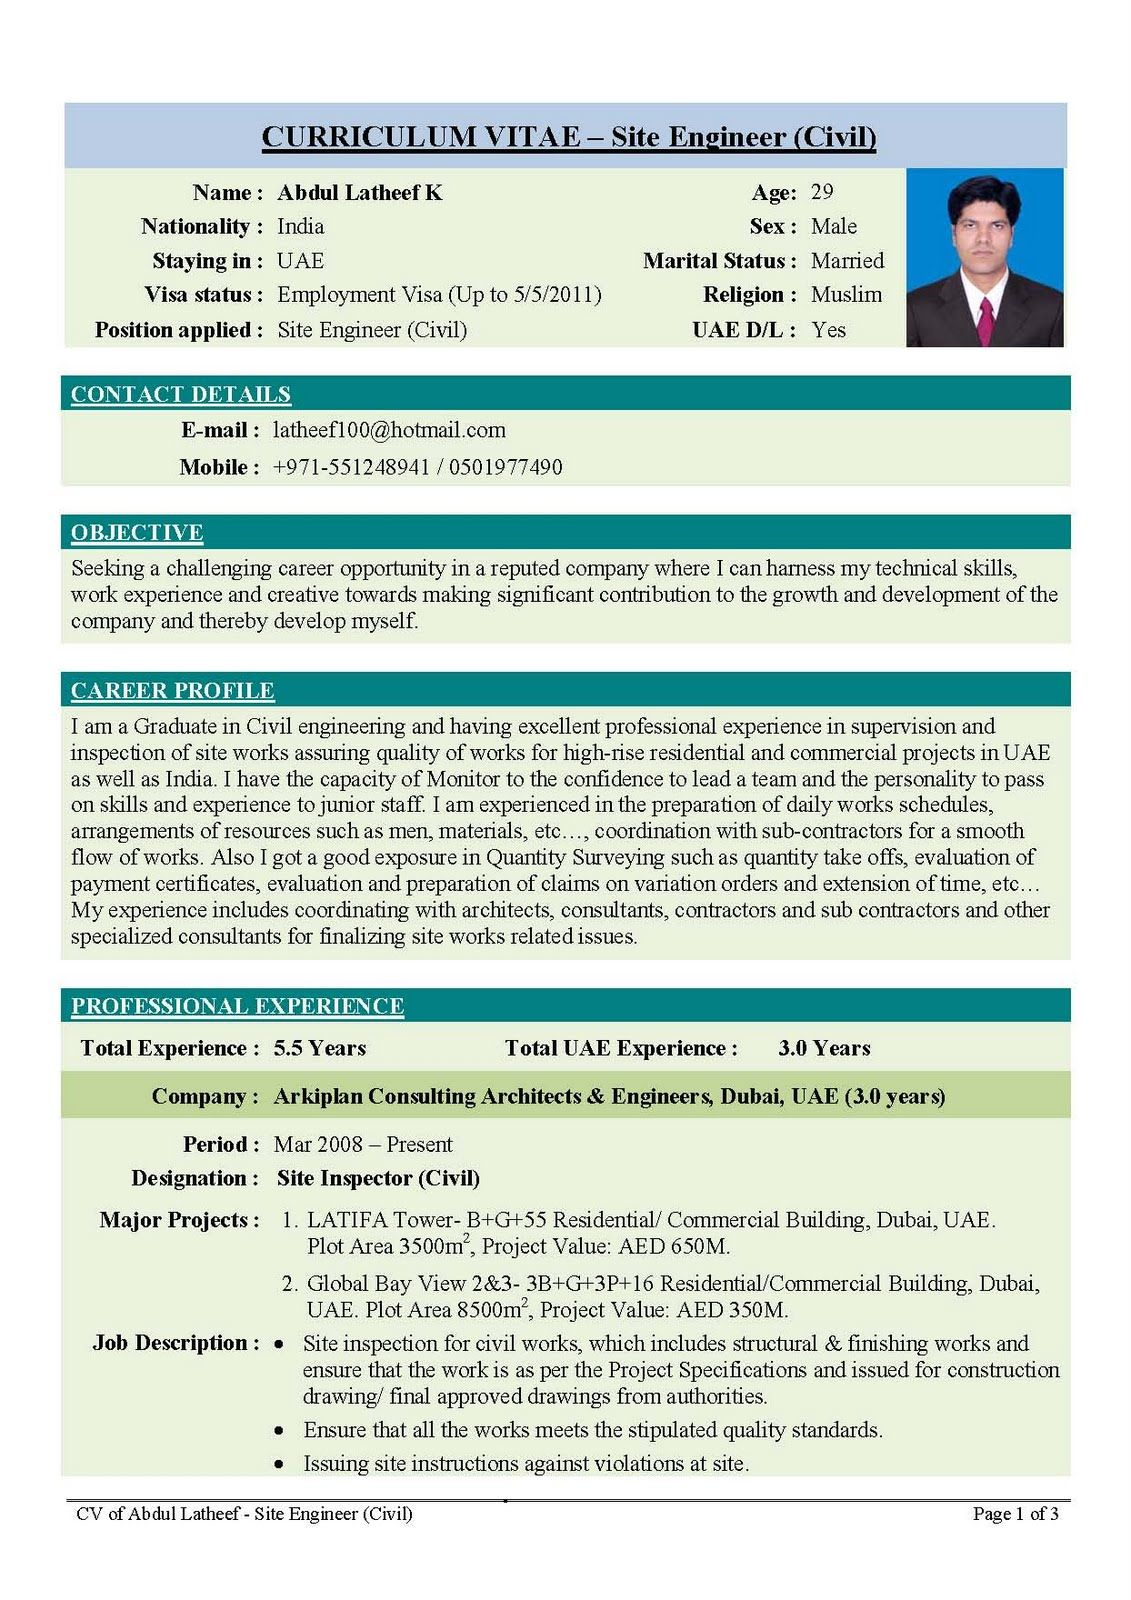 Civil Engineer Cv Site Enginee 55 Yrs Exp  Places to